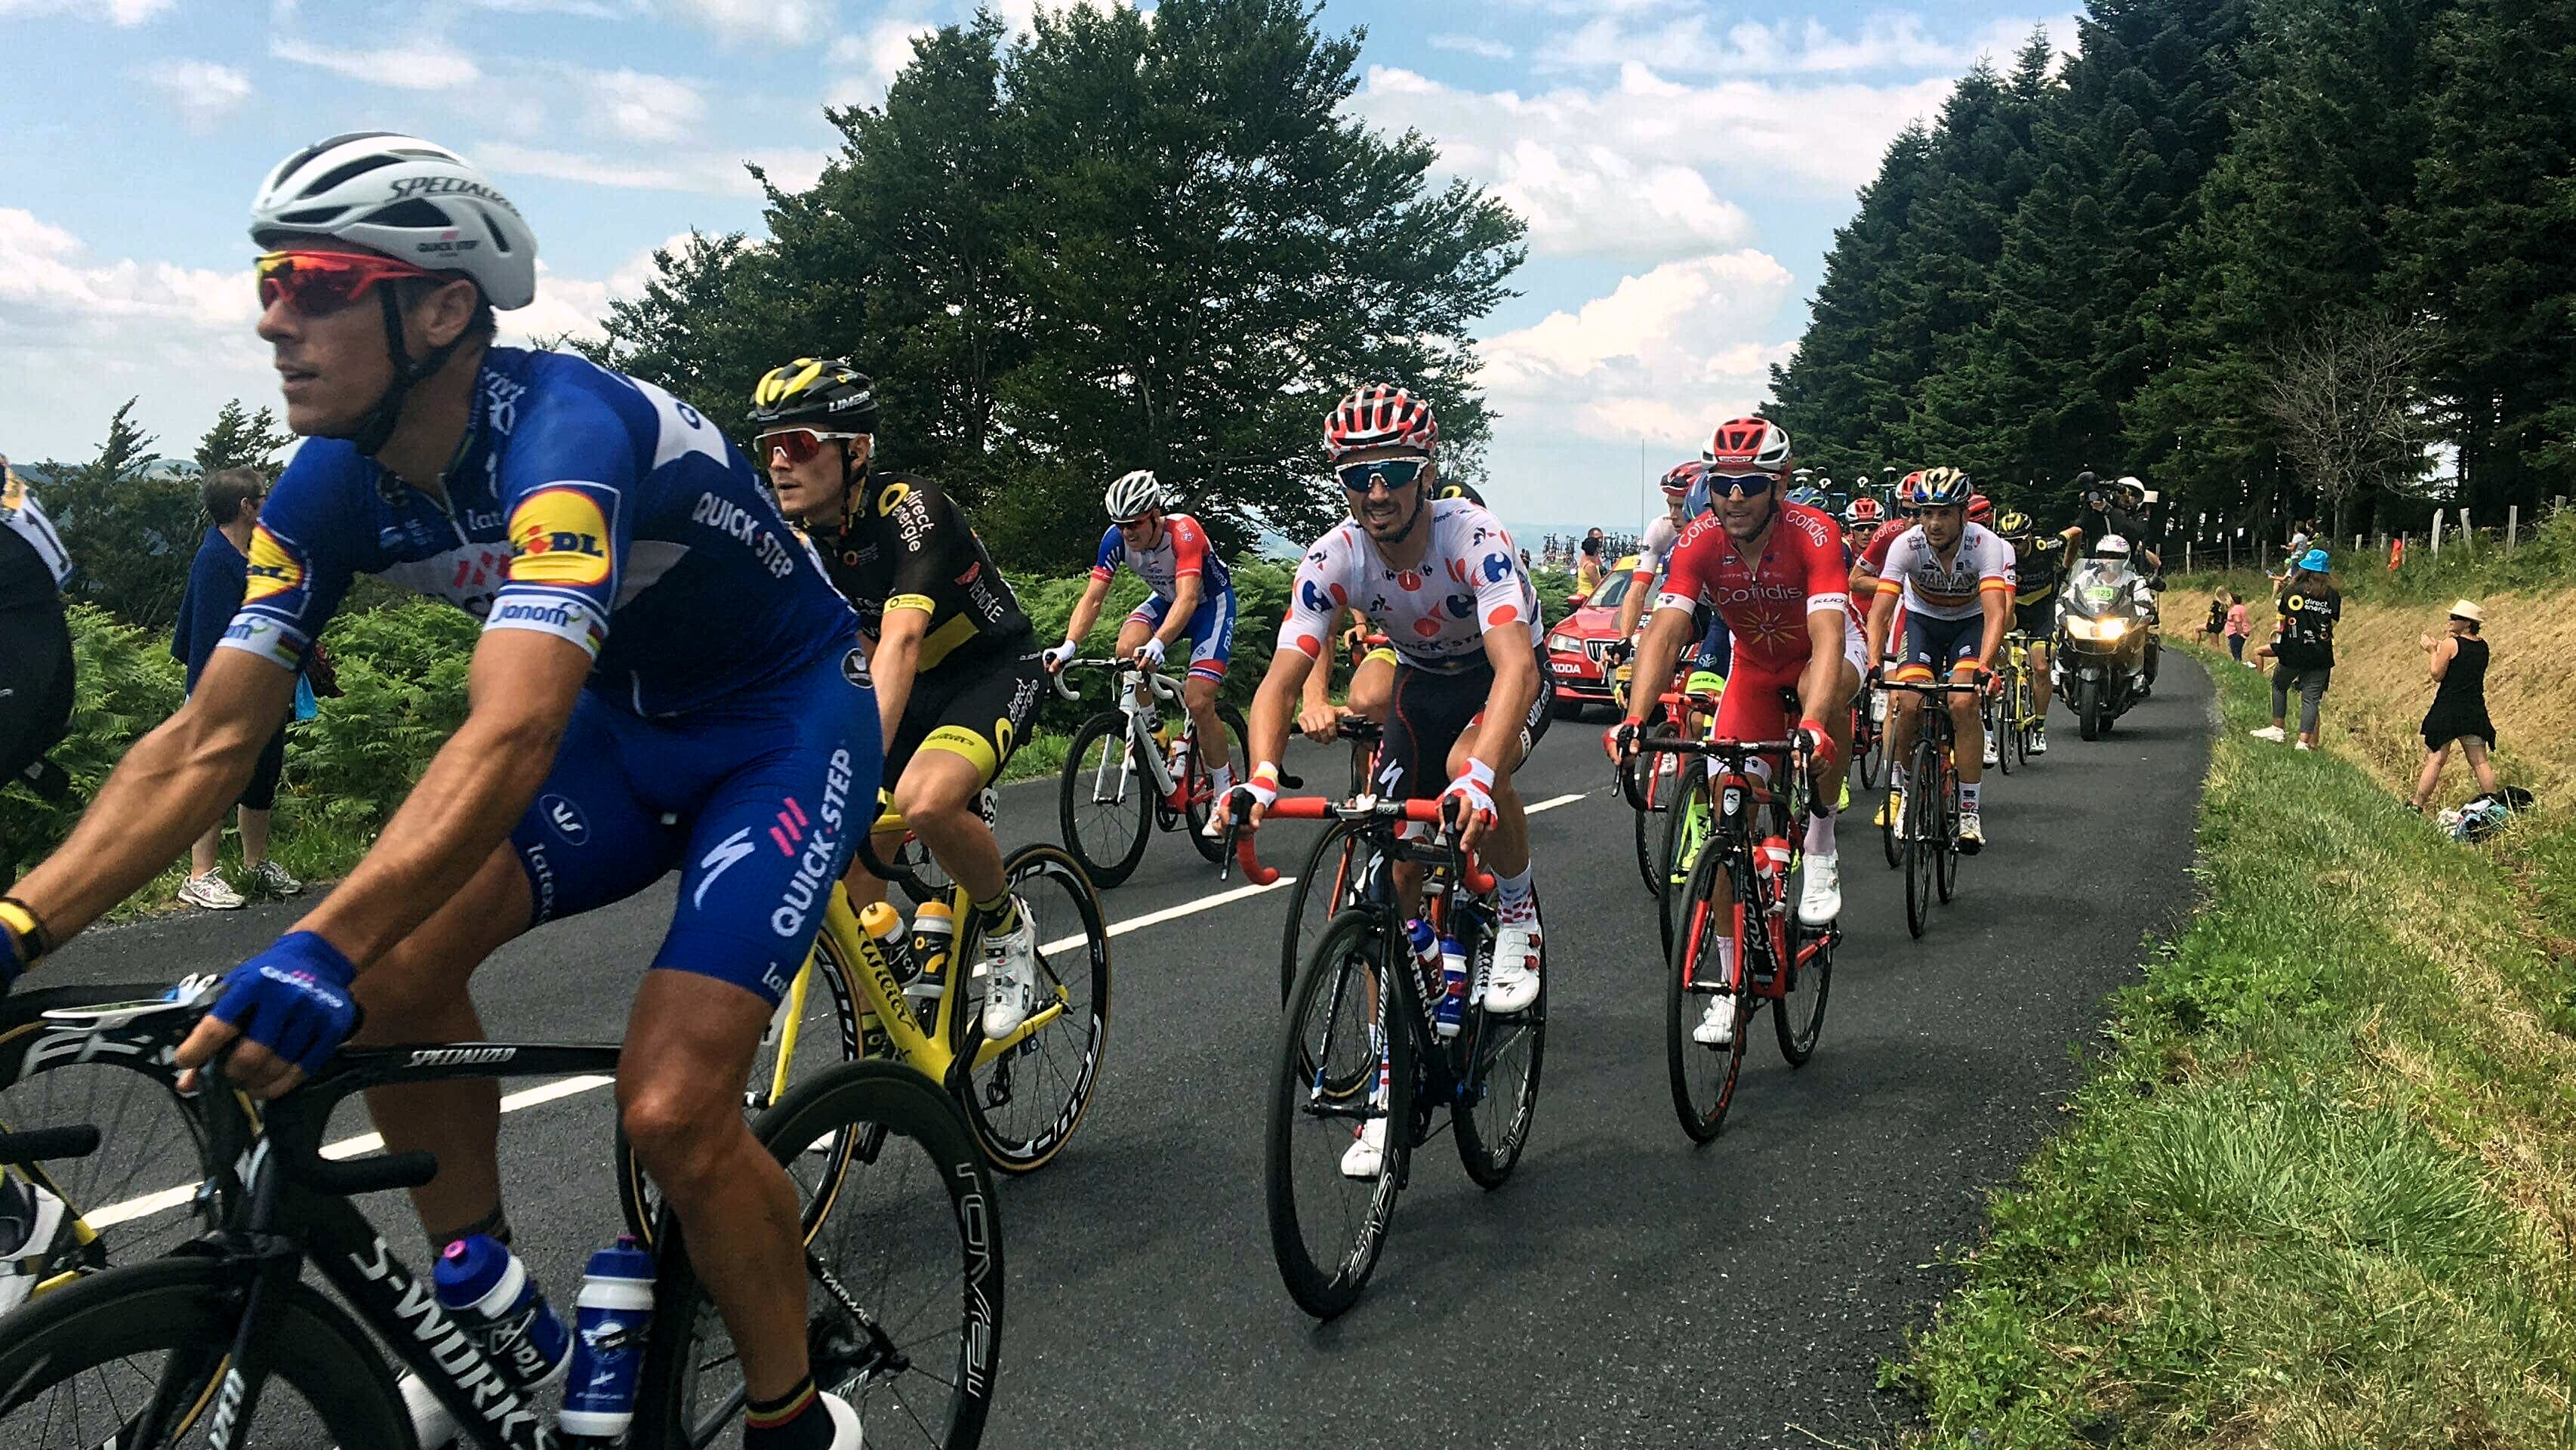 The Psychological Meaning of the Tour de France